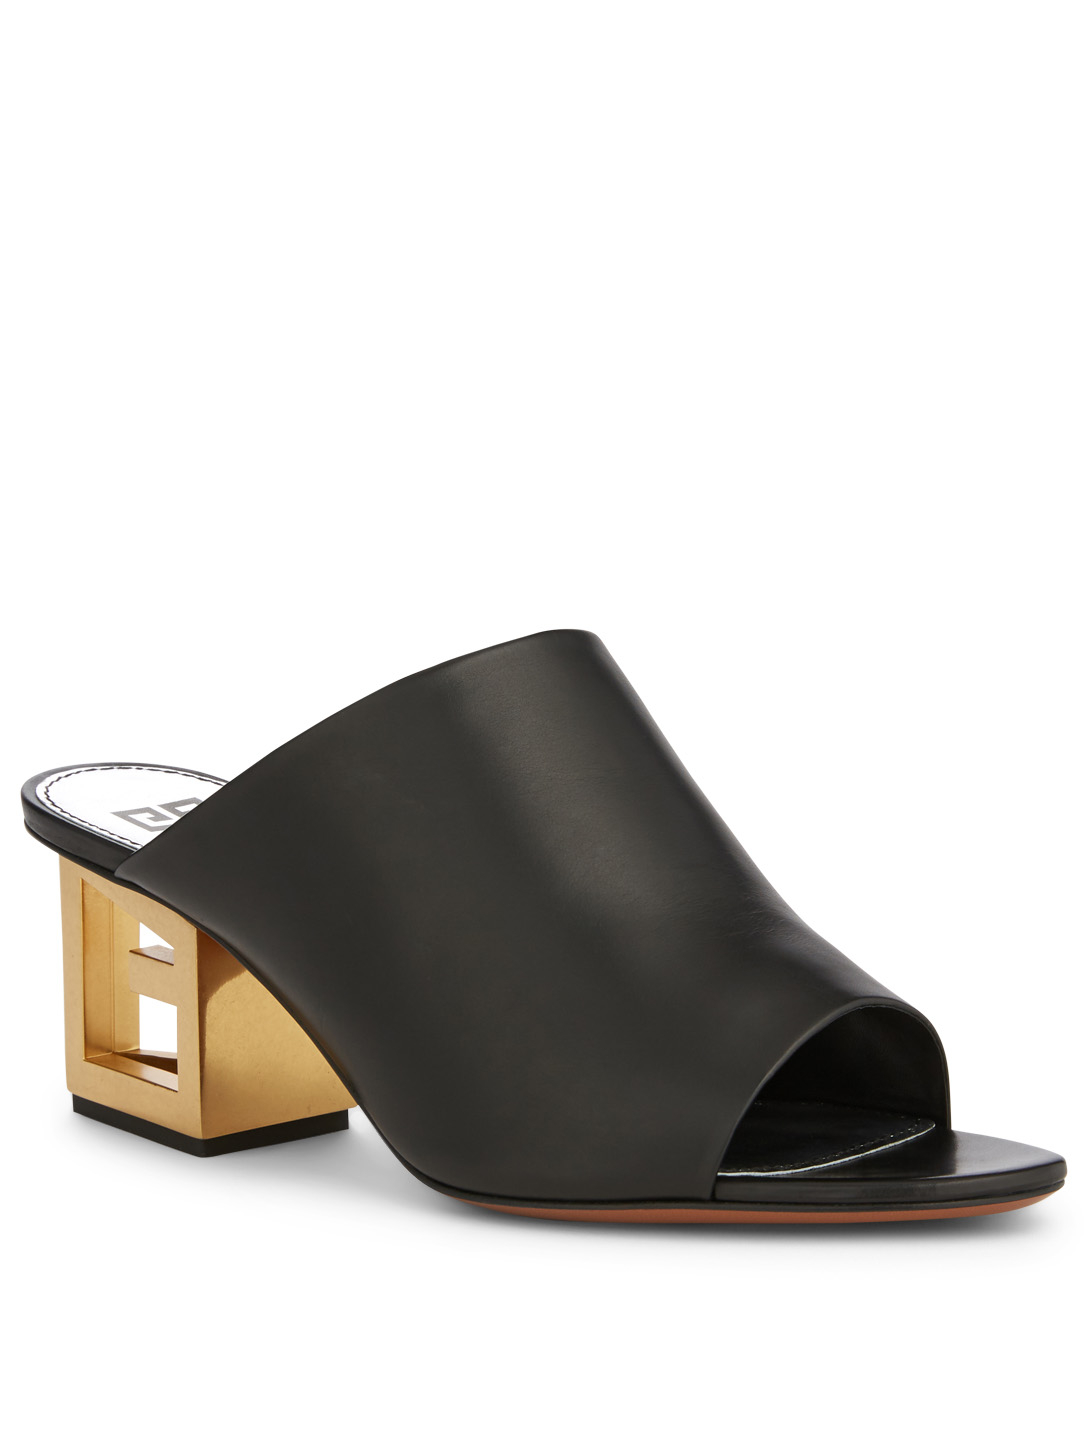 GIVENCHY Leather Mule Sandals With G Heel Womens Black